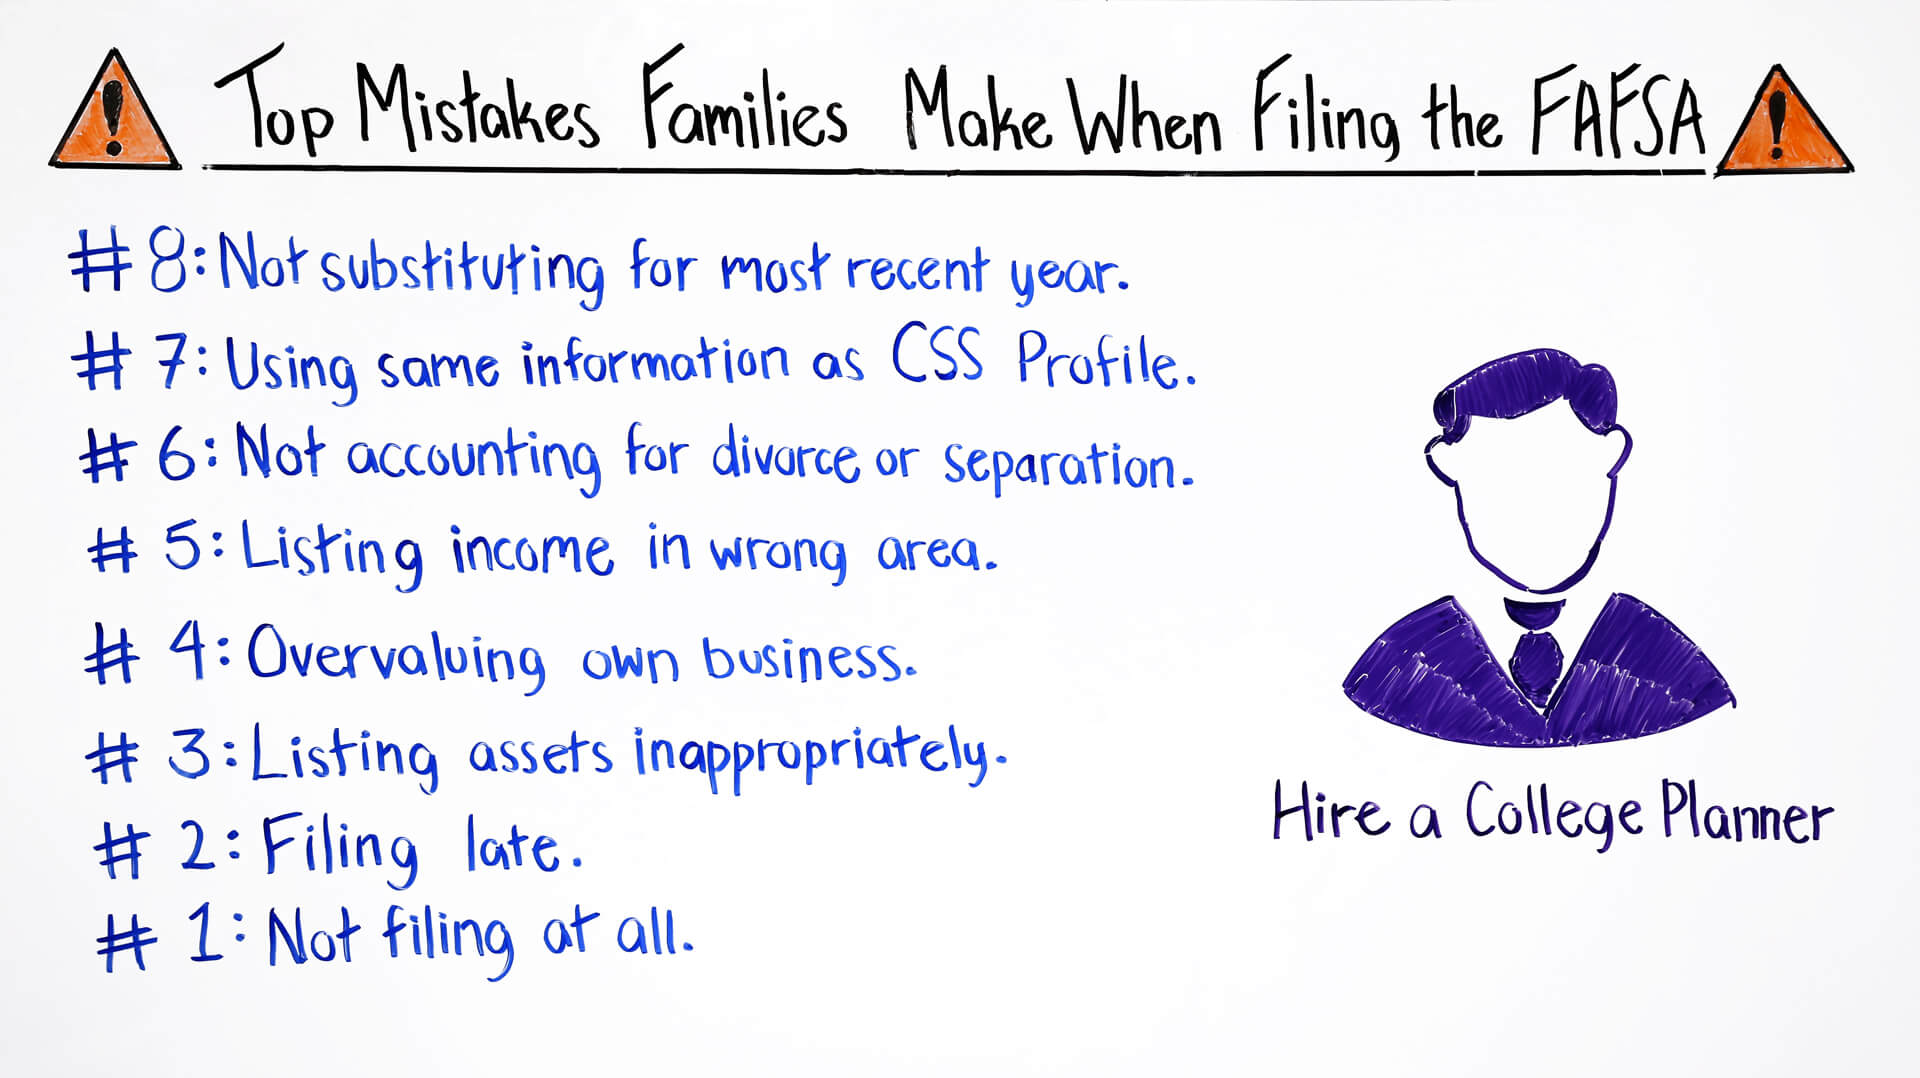 top mistakes families make when filing the fafsa